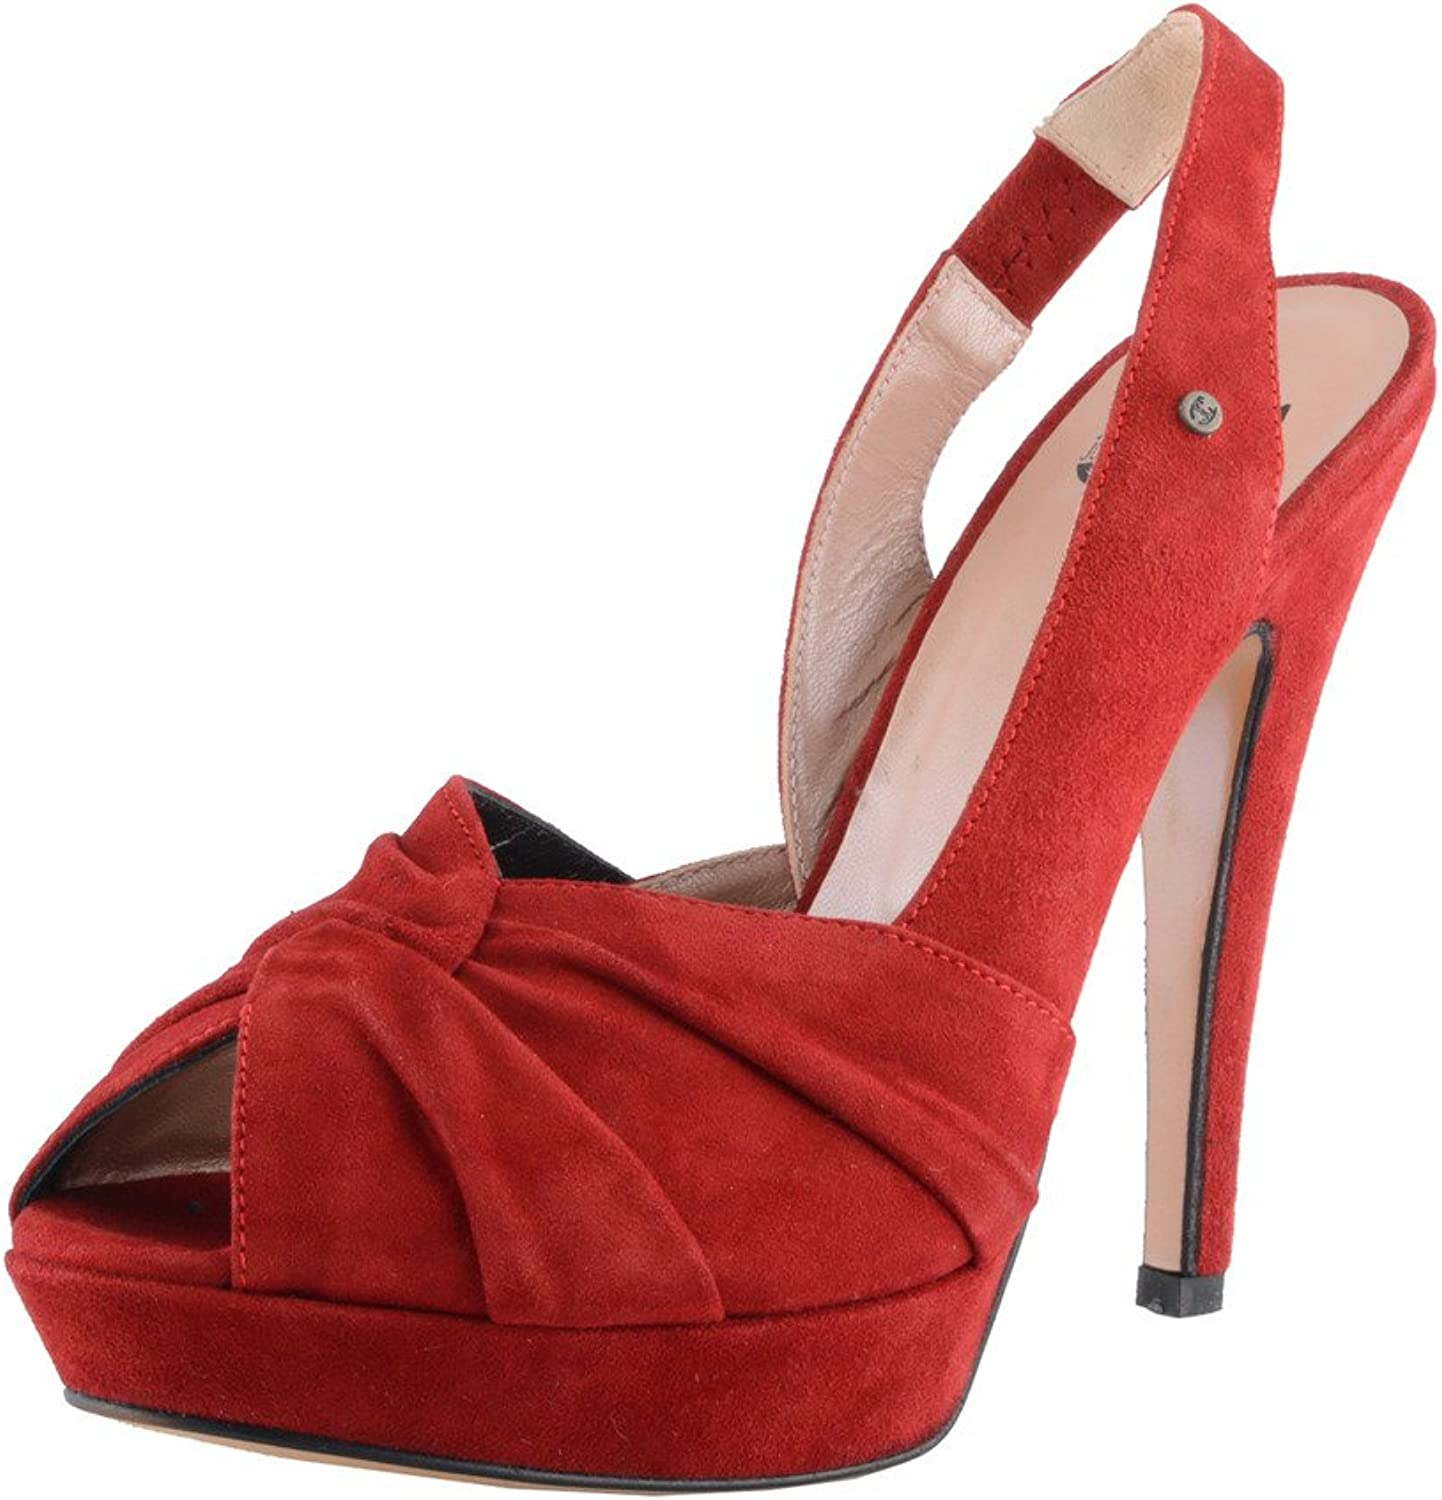 Just Cavalli Women's Suede Red High Heel Pumps Slingback shoes